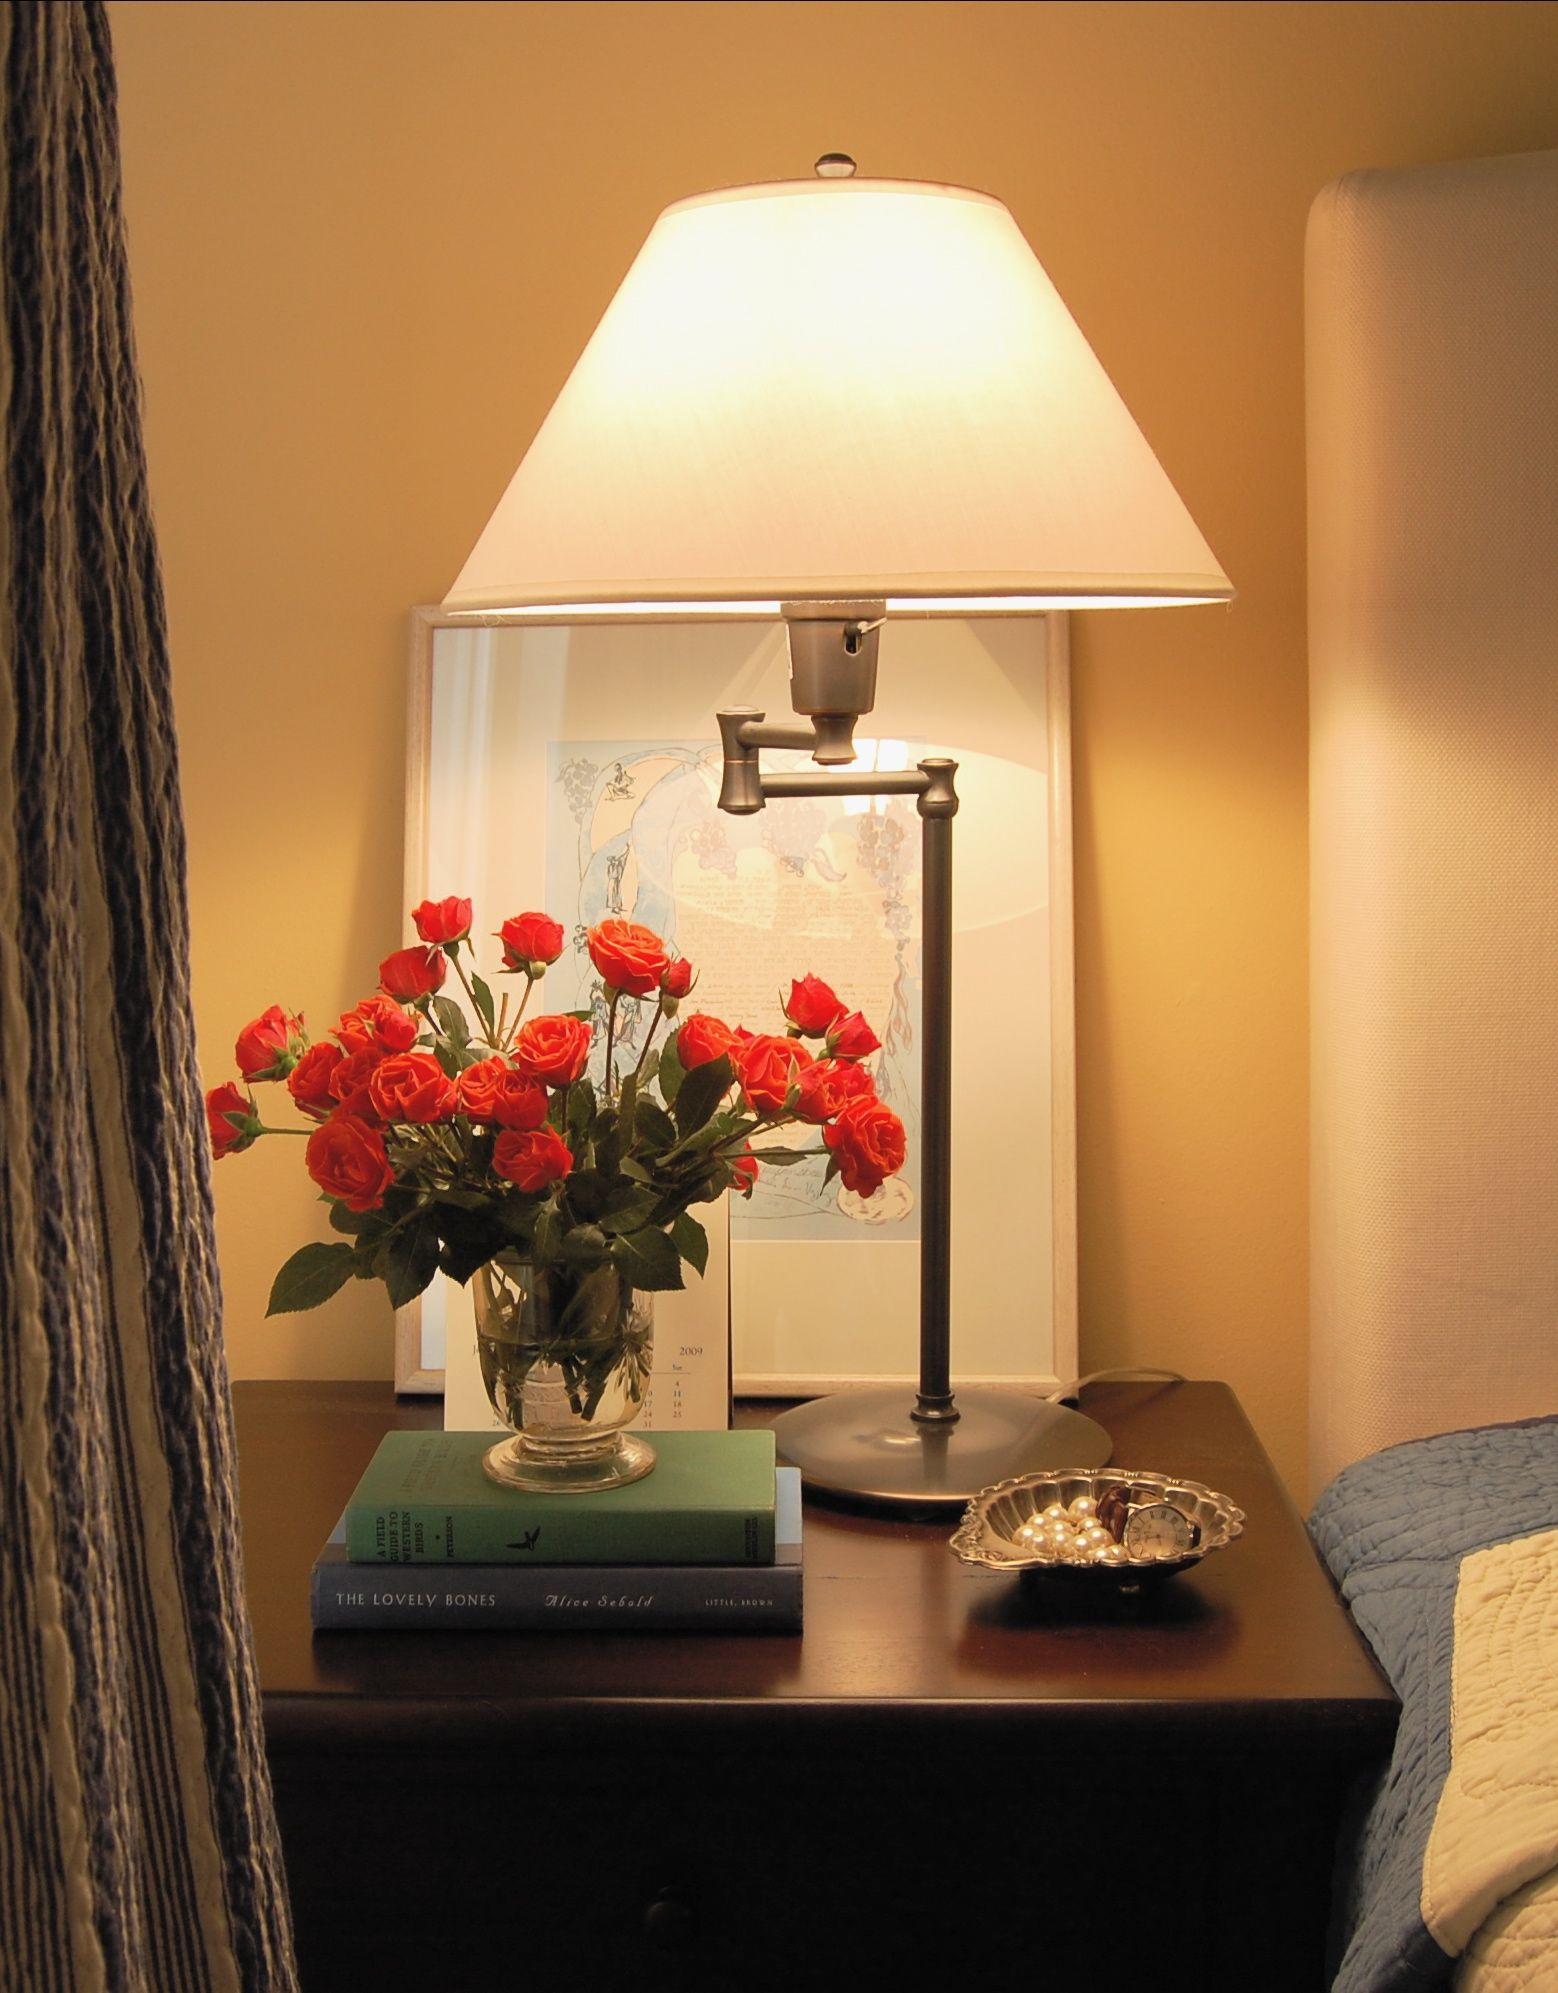 Small Lamps For Bedroom Dresser | Guest Room in 2019 | Table lamps ...